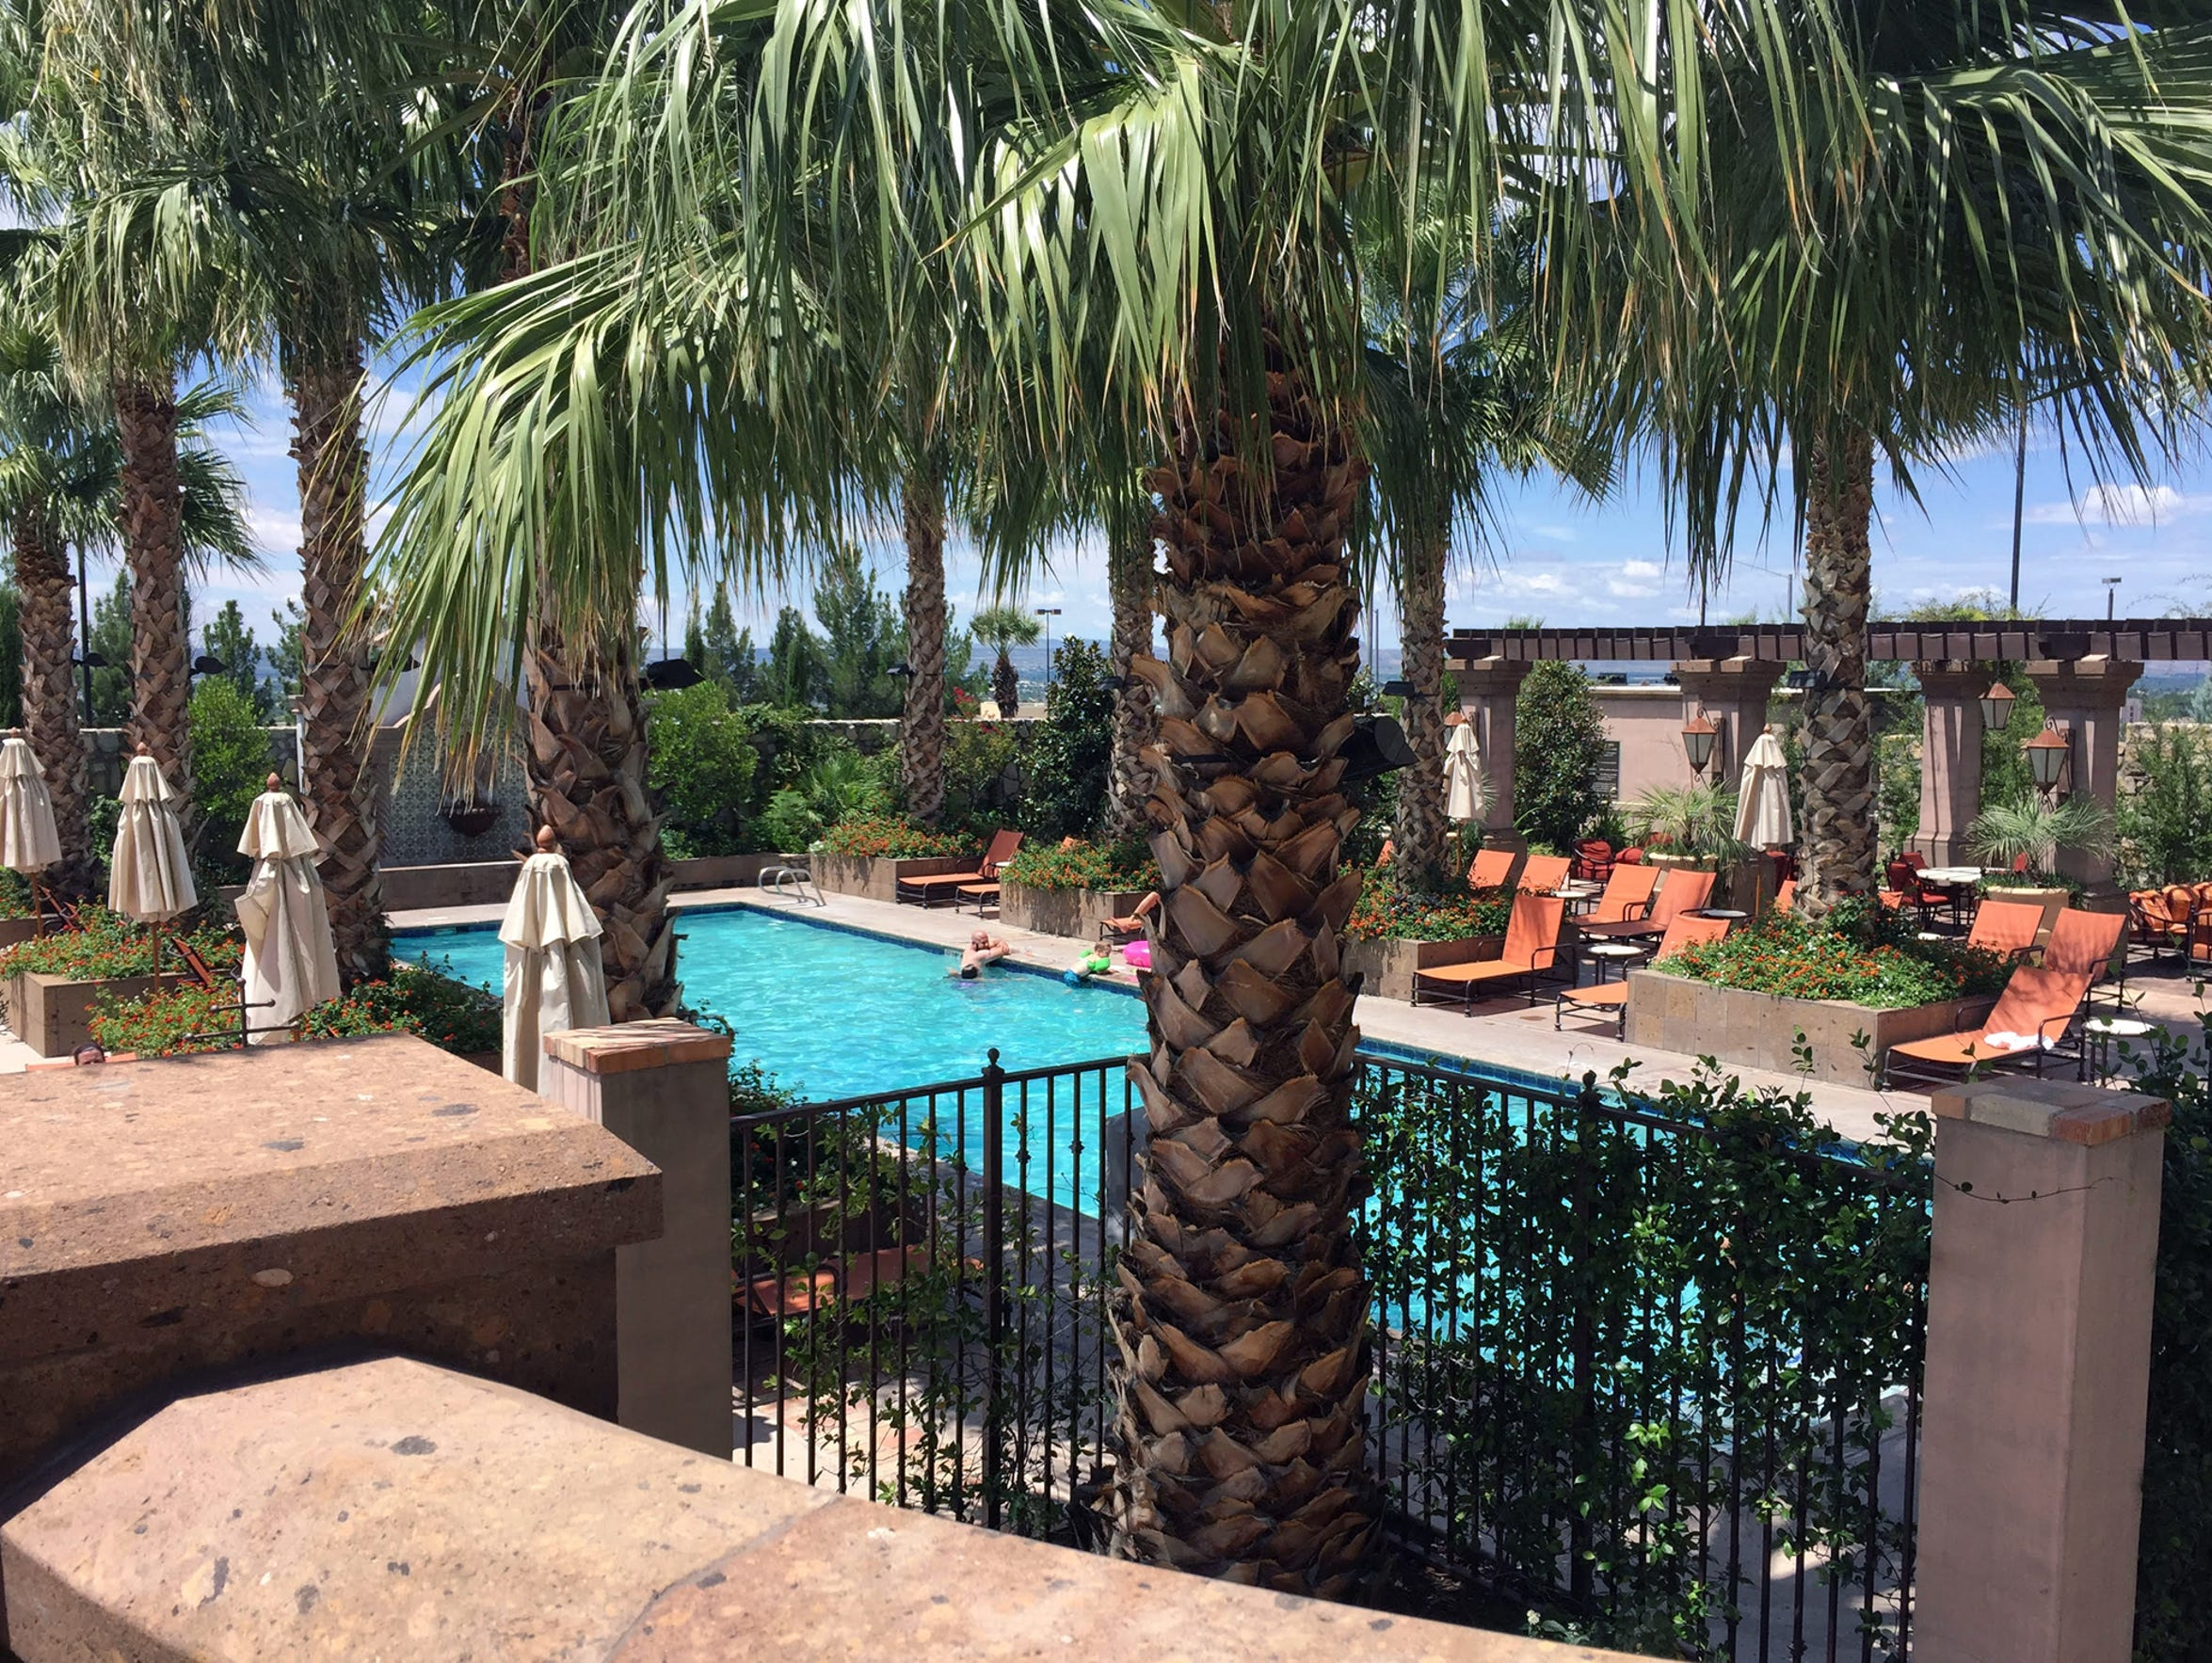 A view of the outdoor spaces Hotel Encanto de Las Cruces